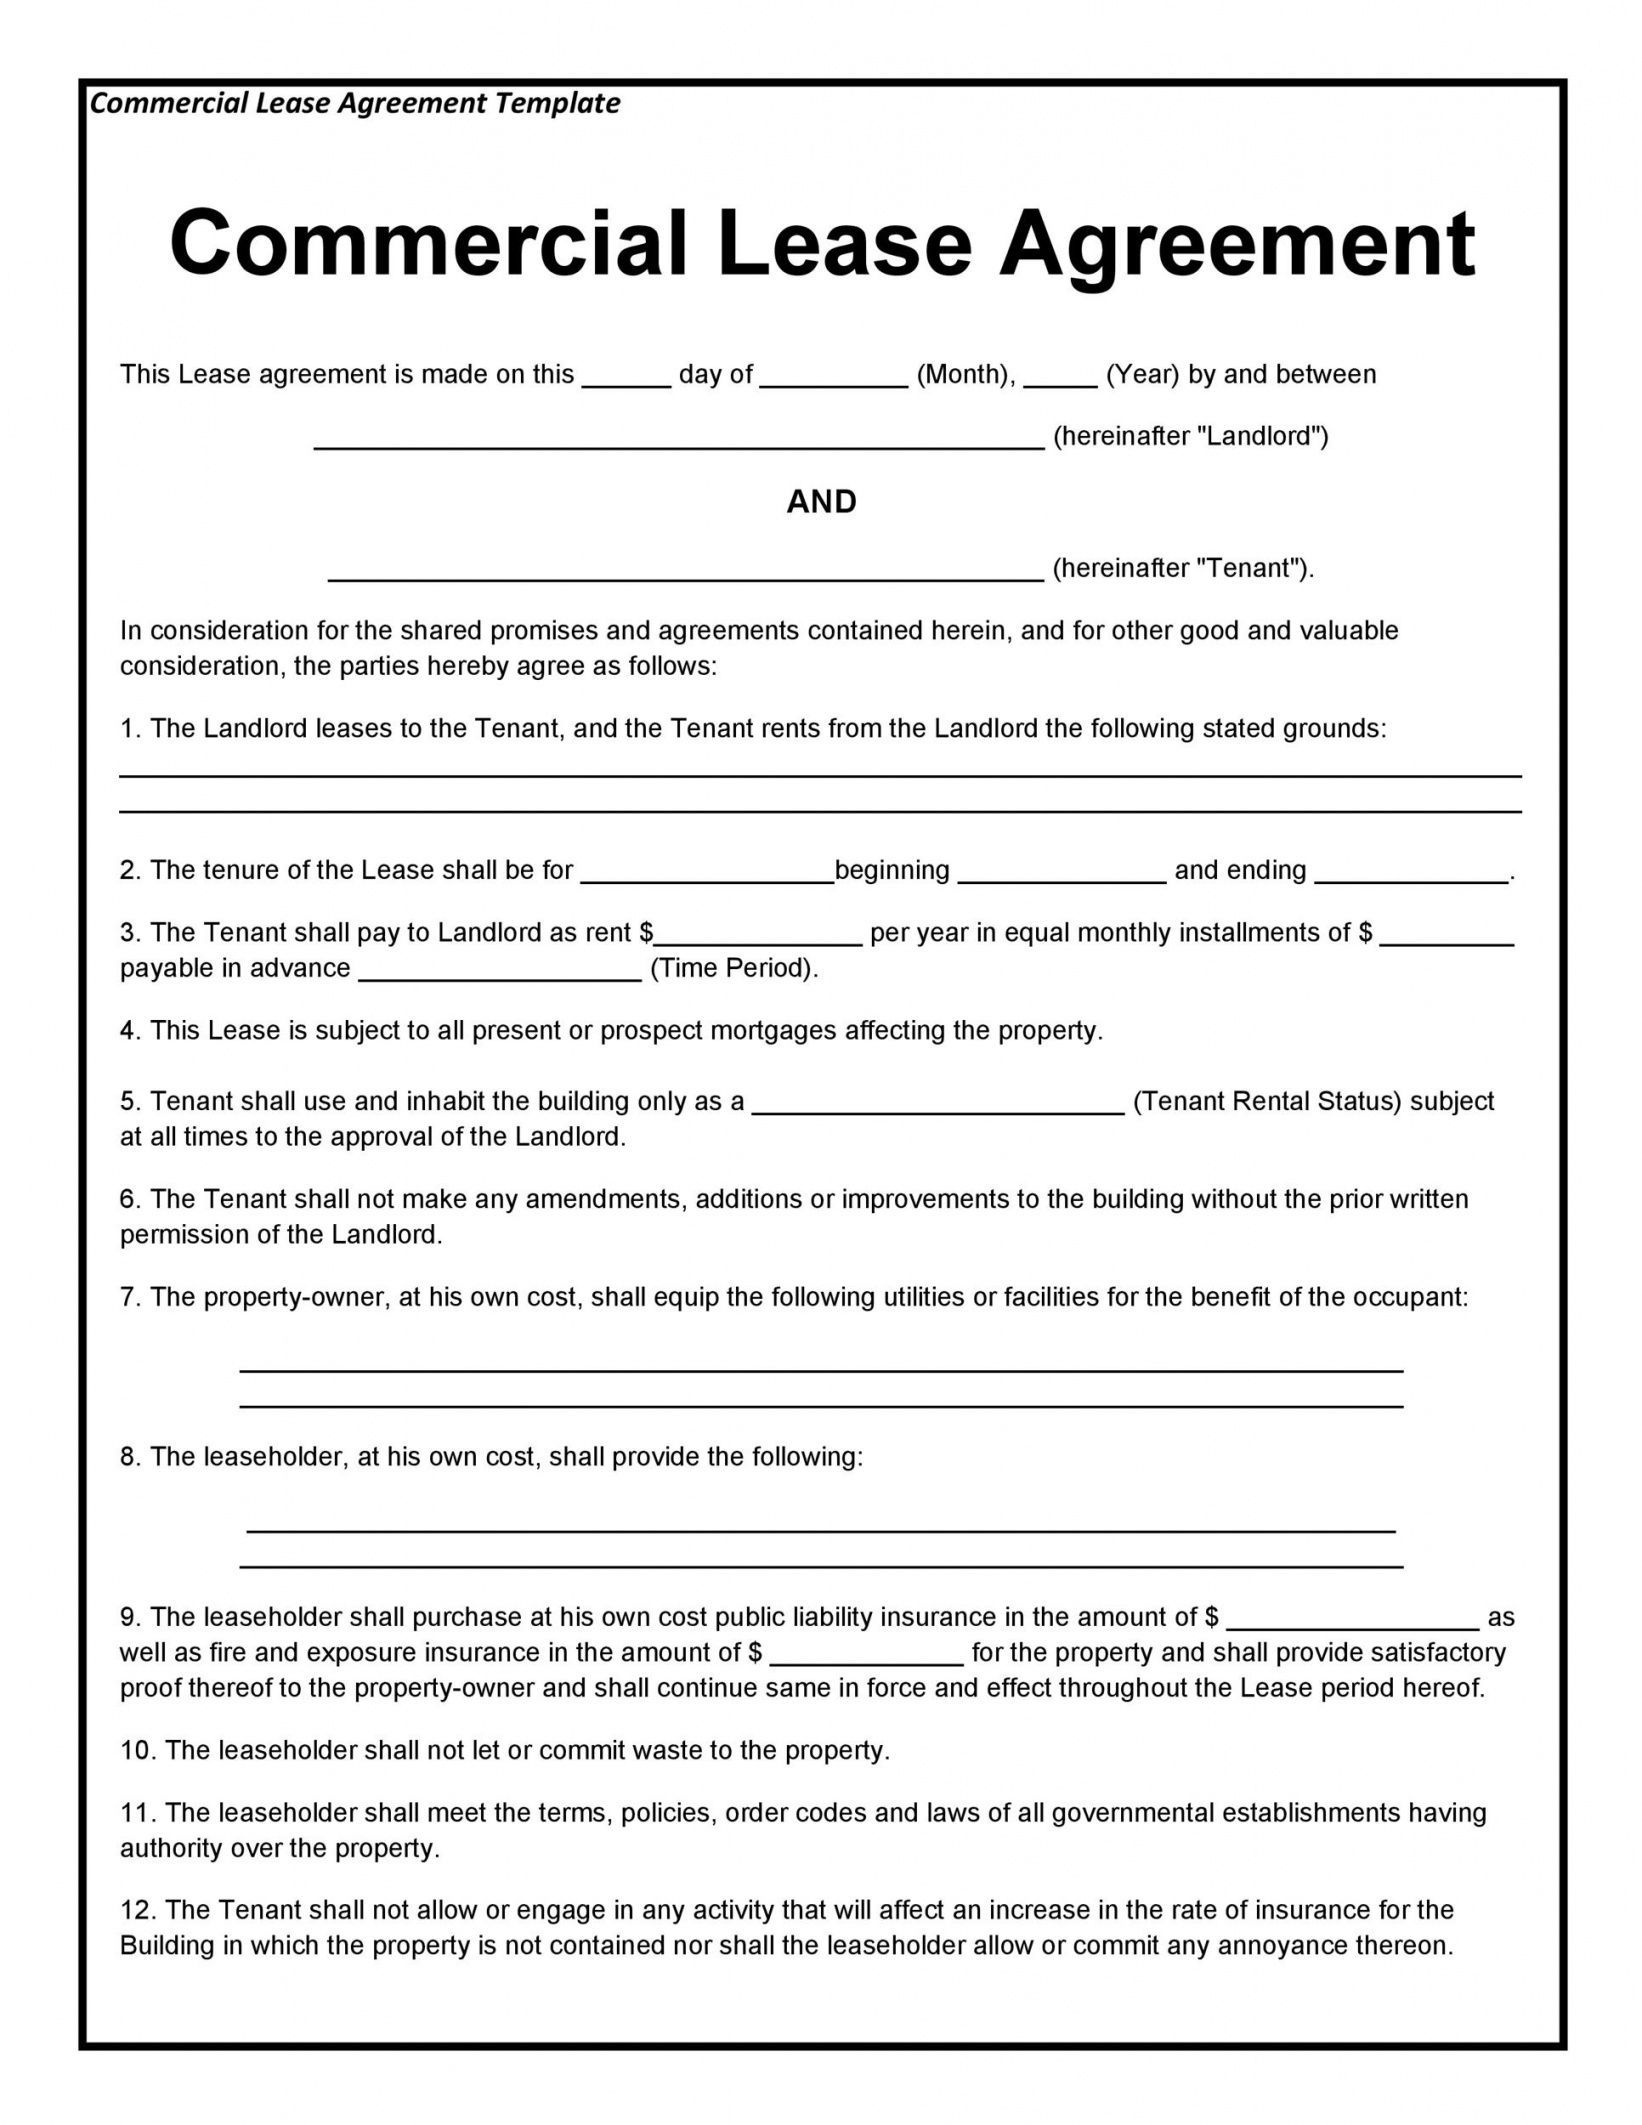 Browse Our Sample Of Real Estate Lease Agreement Template Lease Agreement Rental Agreement Templates Contract Template Real estate lease agreement template